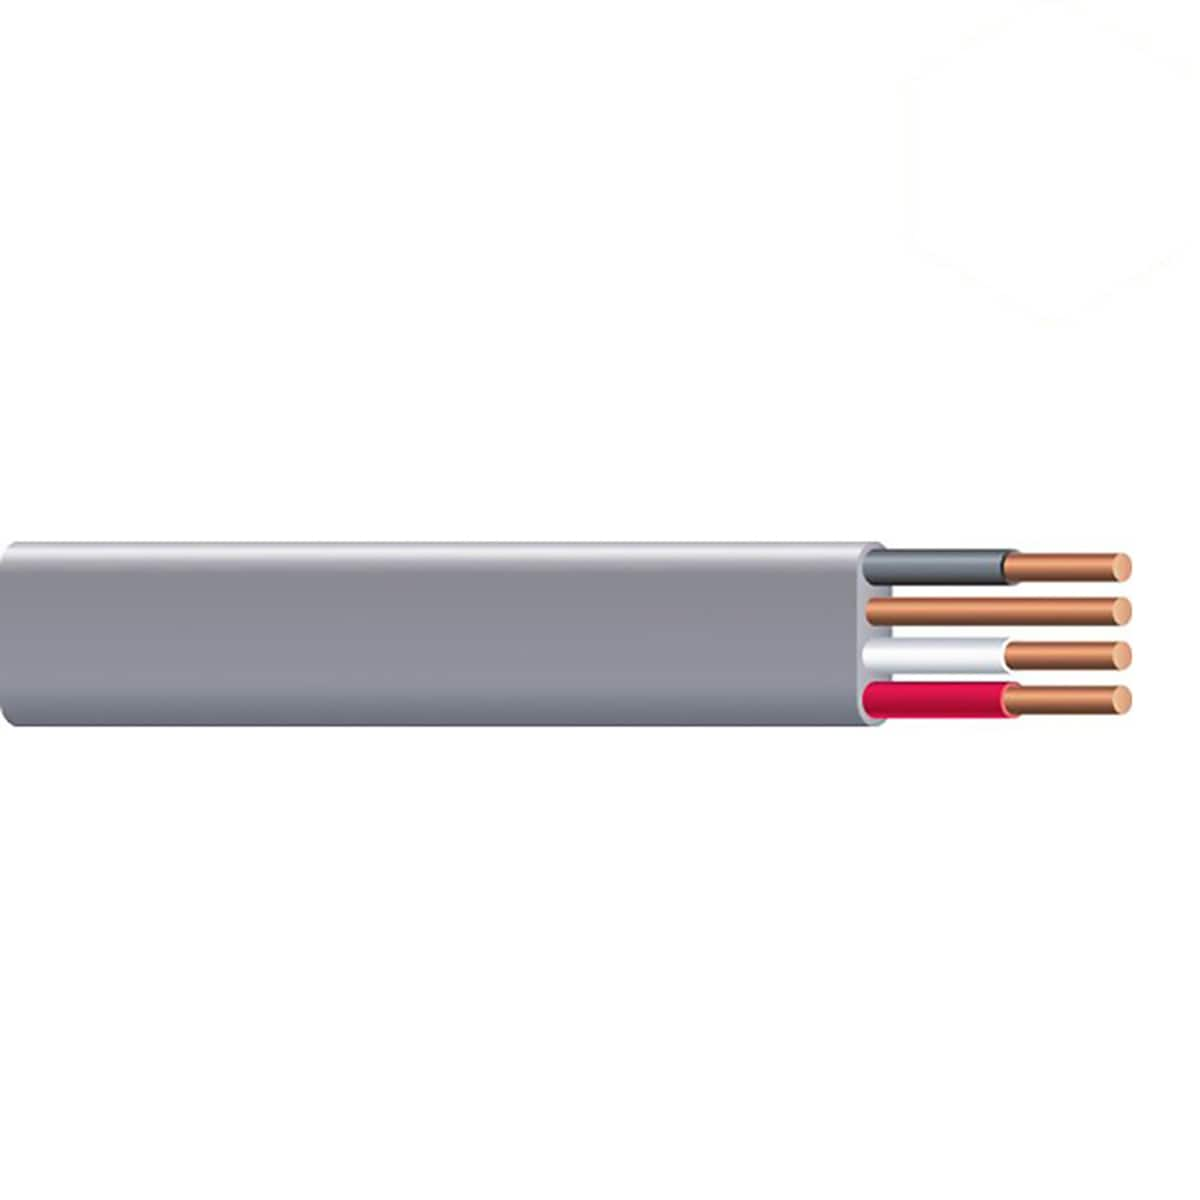 Details about  /1000 FT 8//3 UF-B W//GROUND UNDERGROUND FEEDER DIRECT BURIAL WIRE//CABLE